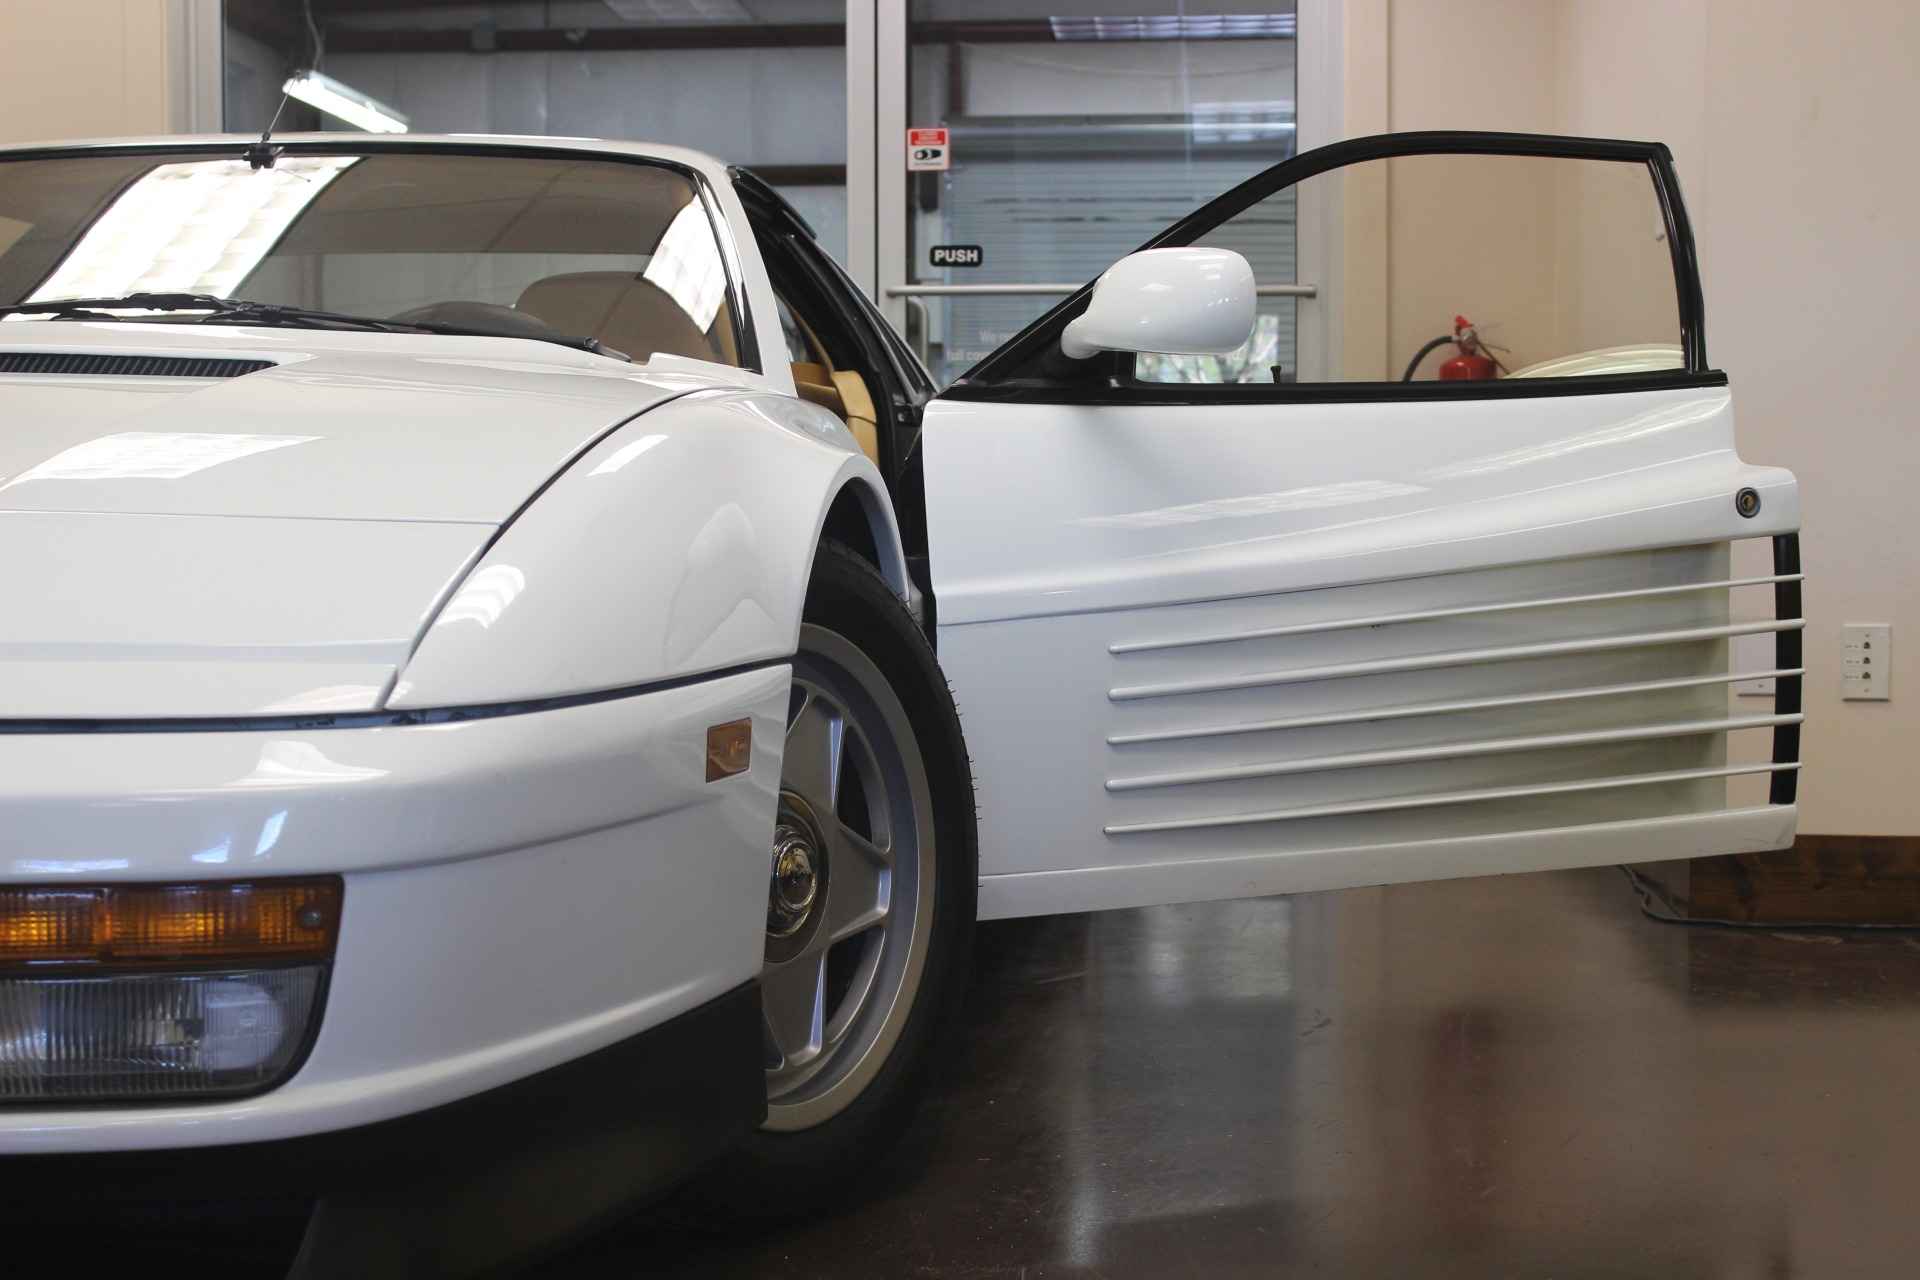 used 1987 ferrari testarossa stock p3477 ultra luxury car from